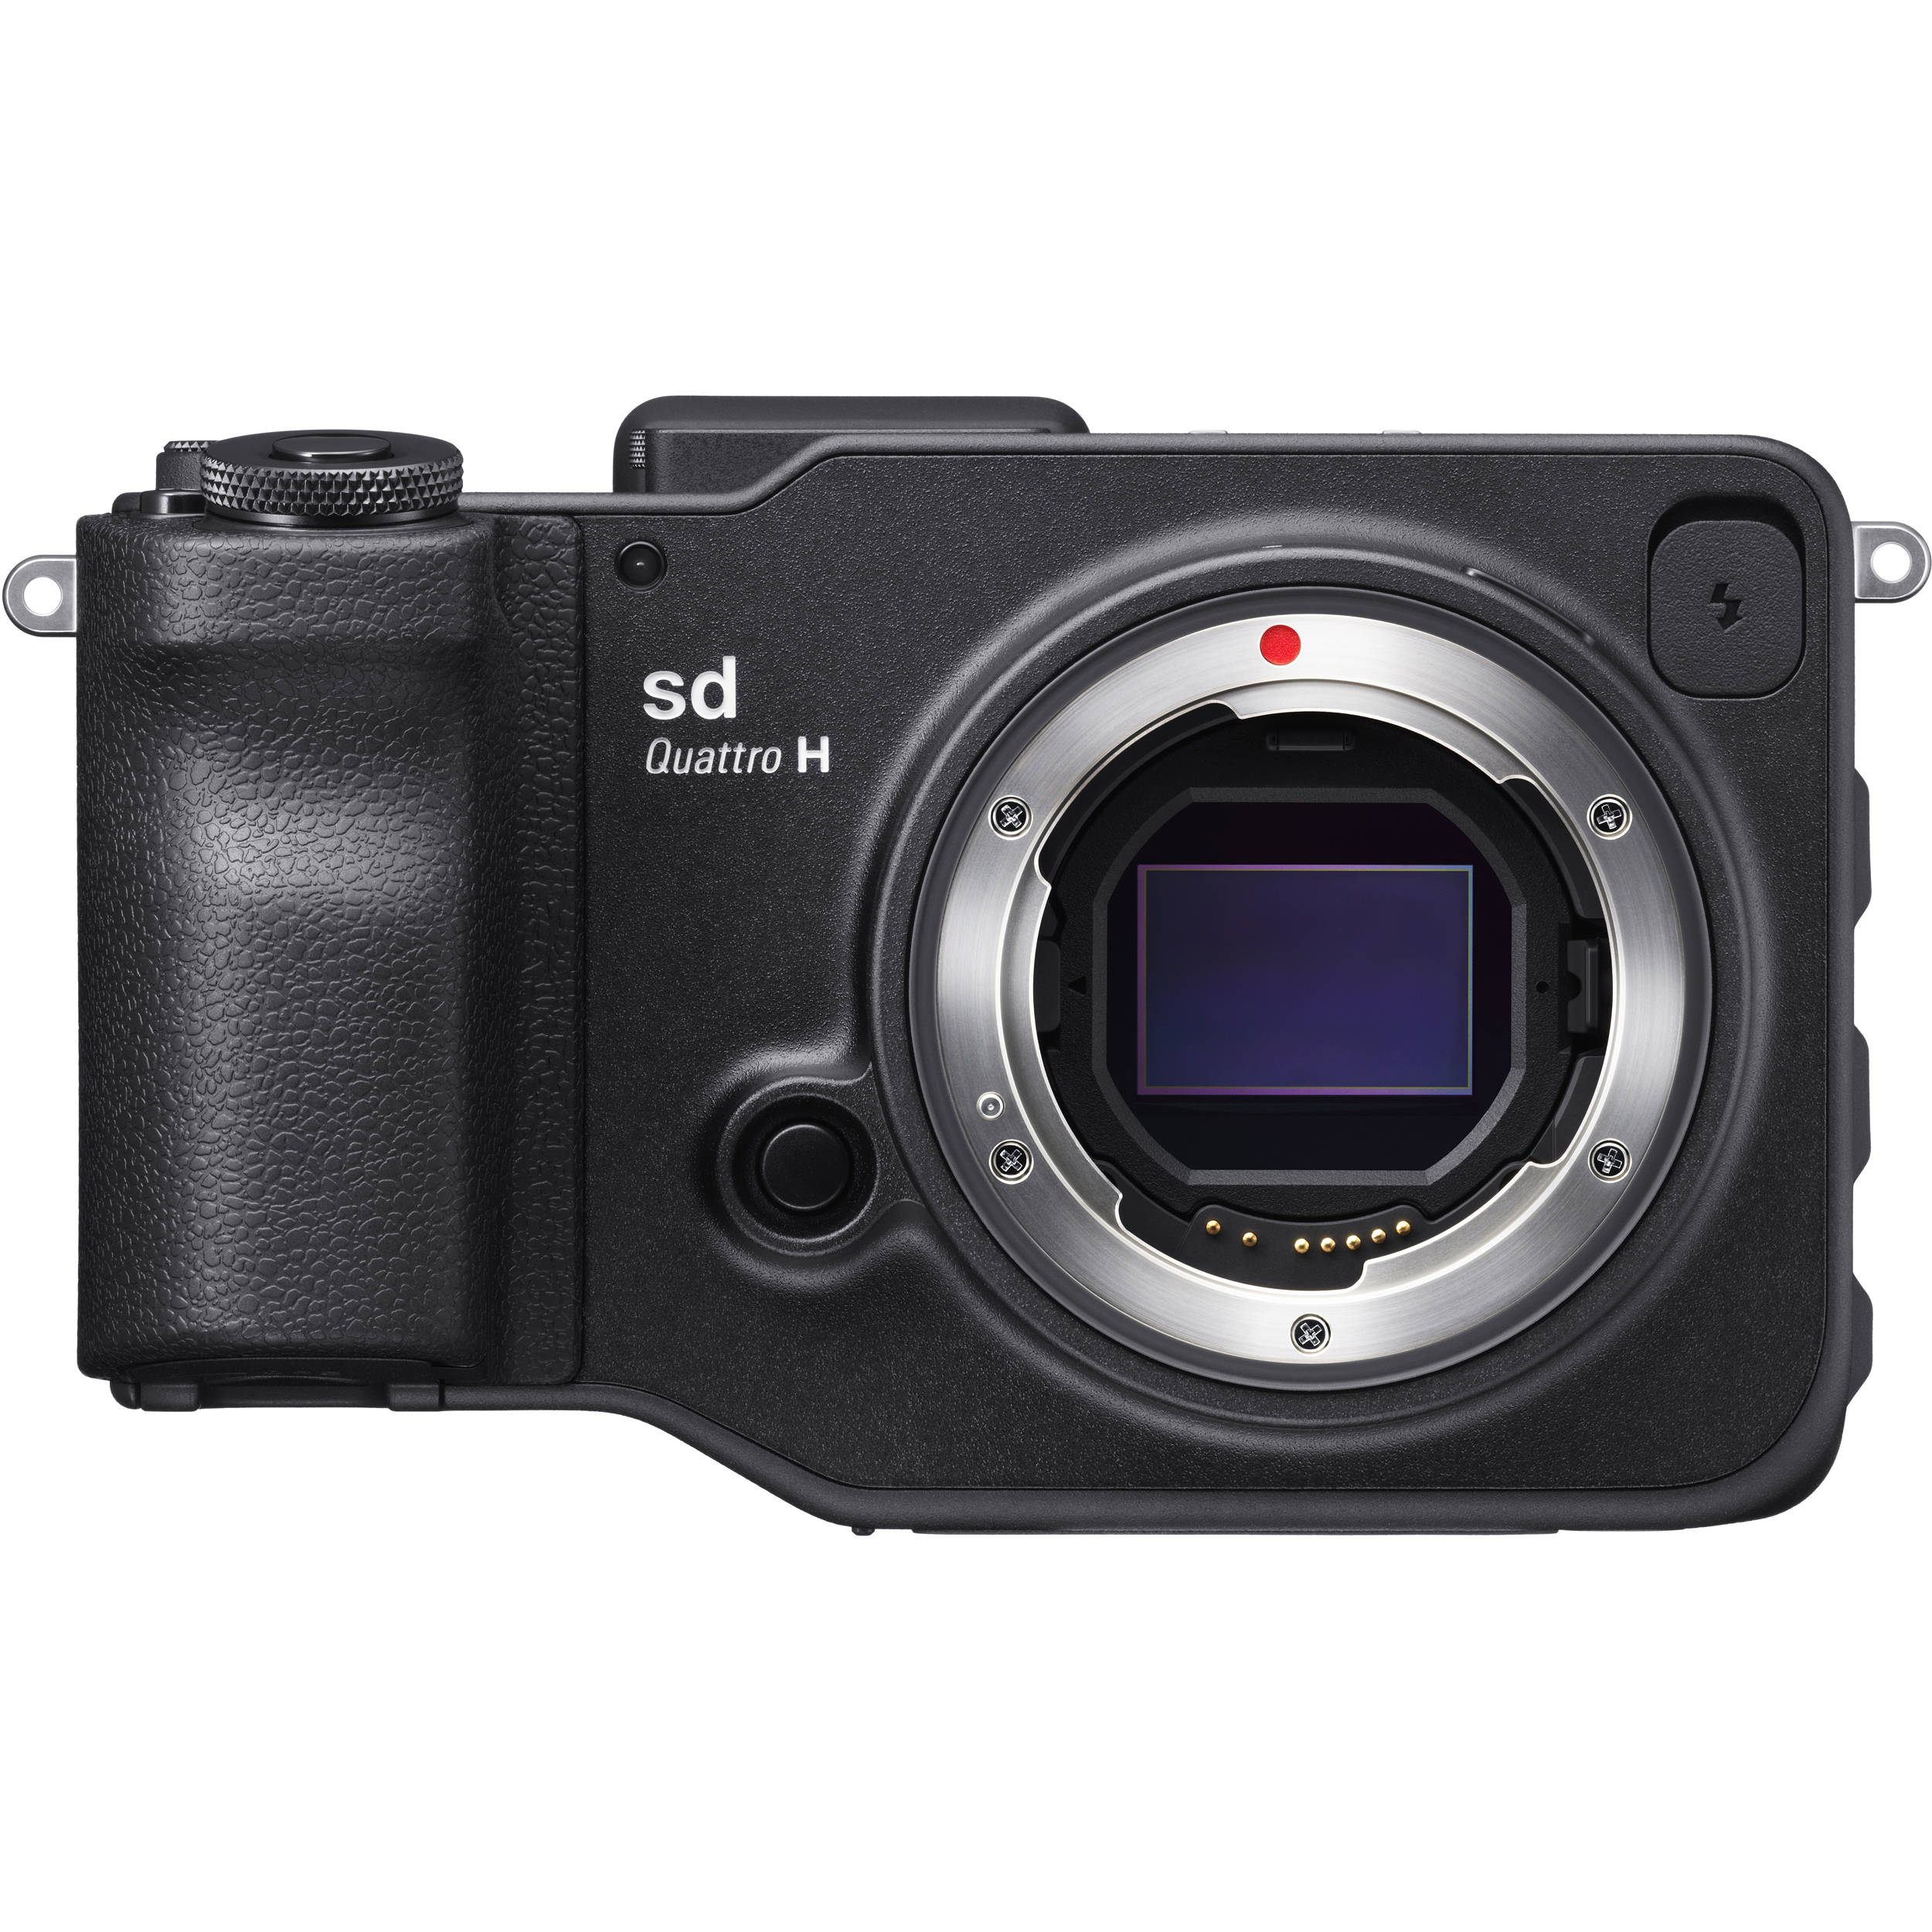 SIGMA sd Quattro Camera Drivers for Windows 10